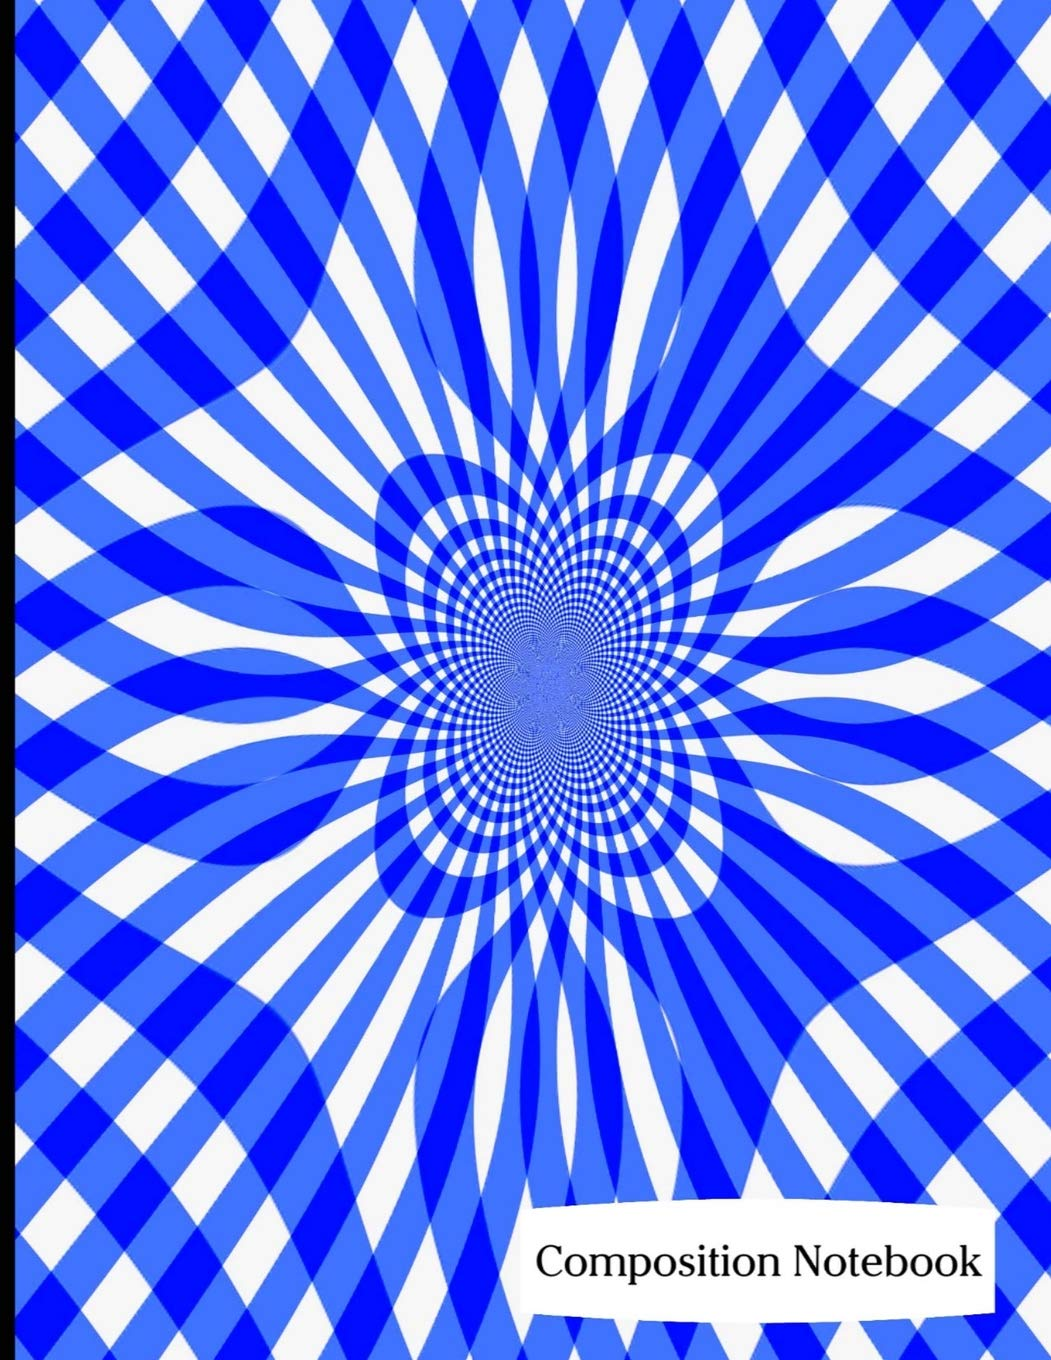 """Read Online Composition Notebook: Blue Swirl Pattern Composition Notebook - 8.5"""" x 11"""" - 200 pages (100 sheets) College Ruled Lined Paper. Glossy Cover. PDF"""